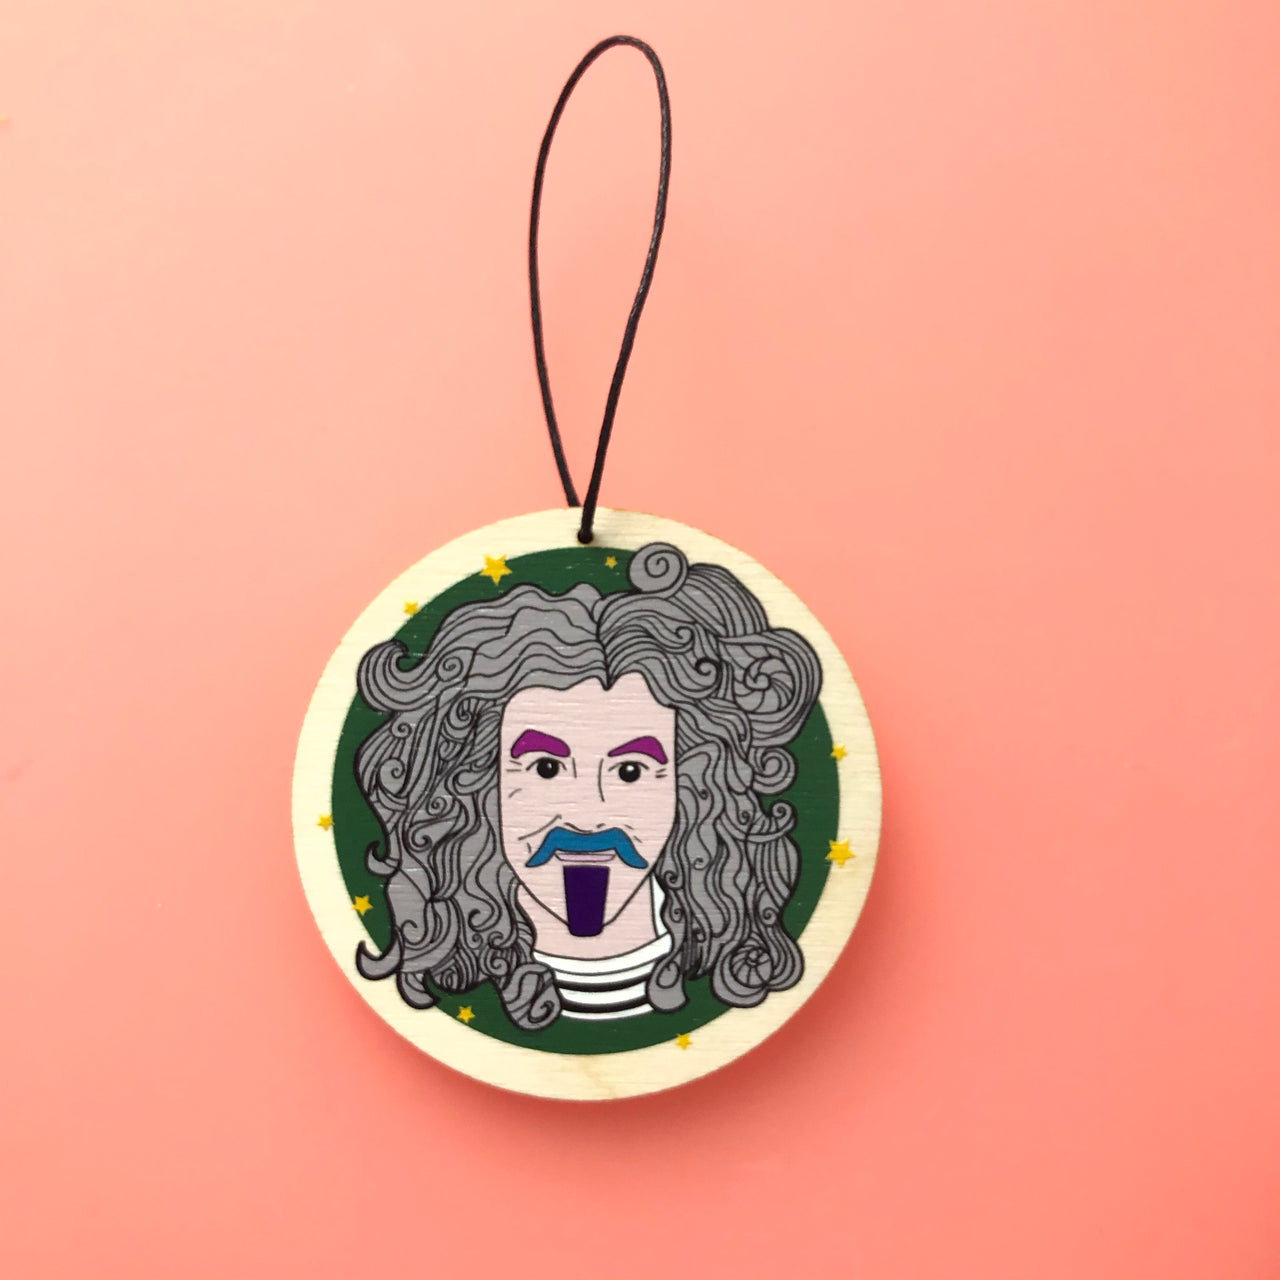 Billy Connolly Wooden Decoration - Green